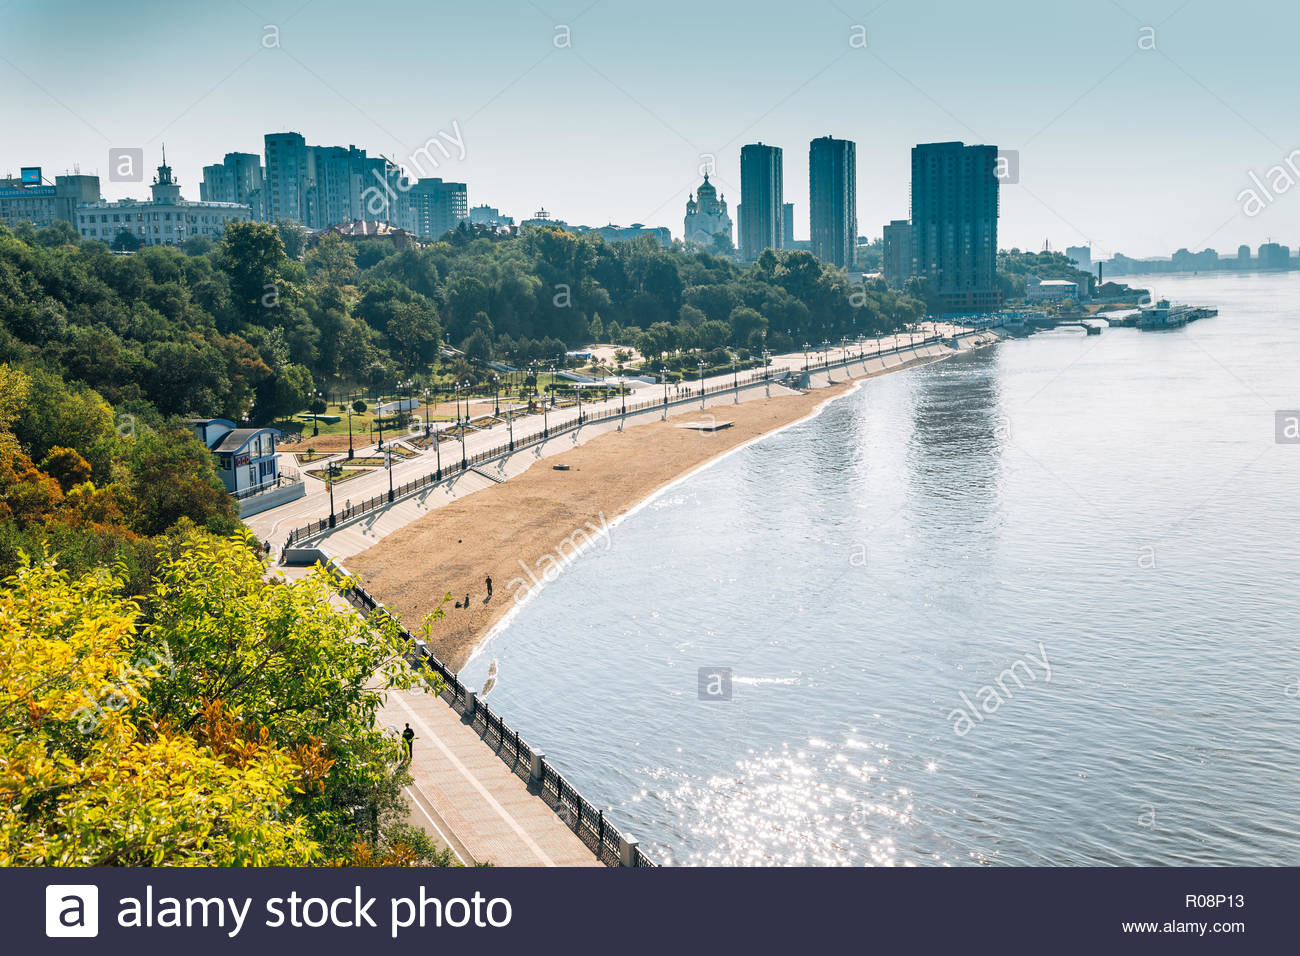 Amur river and city in Khabarovsk, Russia - Stock Image